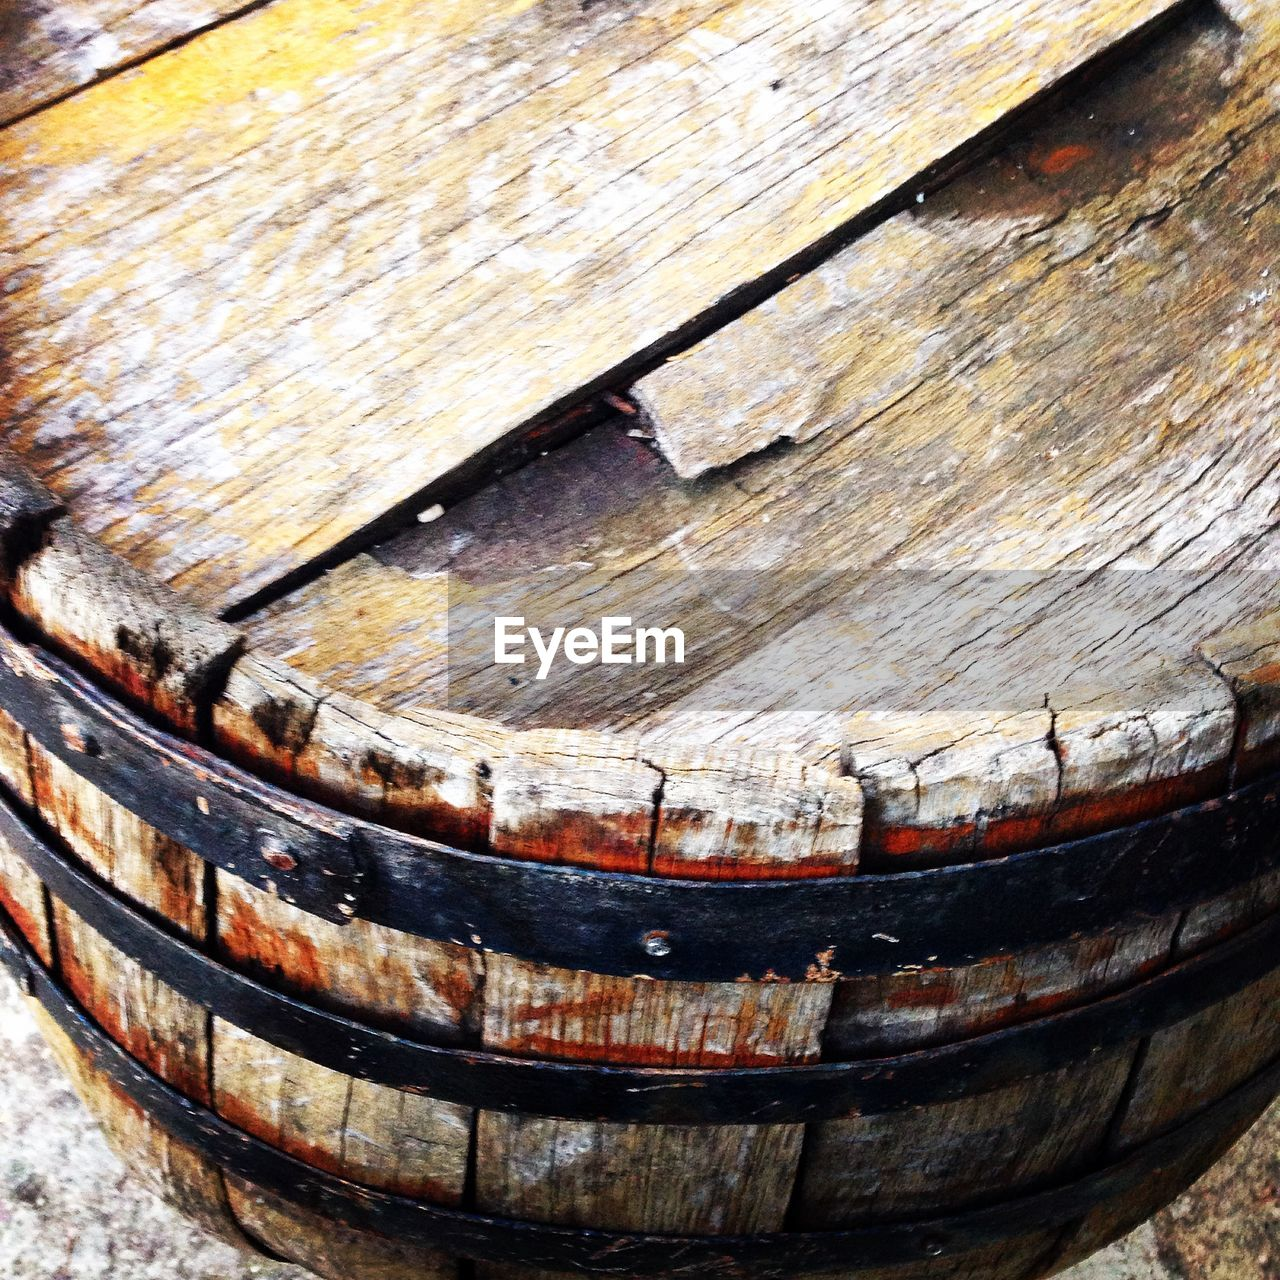 wine, barrel, winery, alcohol, wine cask, wine cellar, wood - material, winemaking, cellar, food and drink, no people, drink, close-up, keg, day, winetasting, indoors